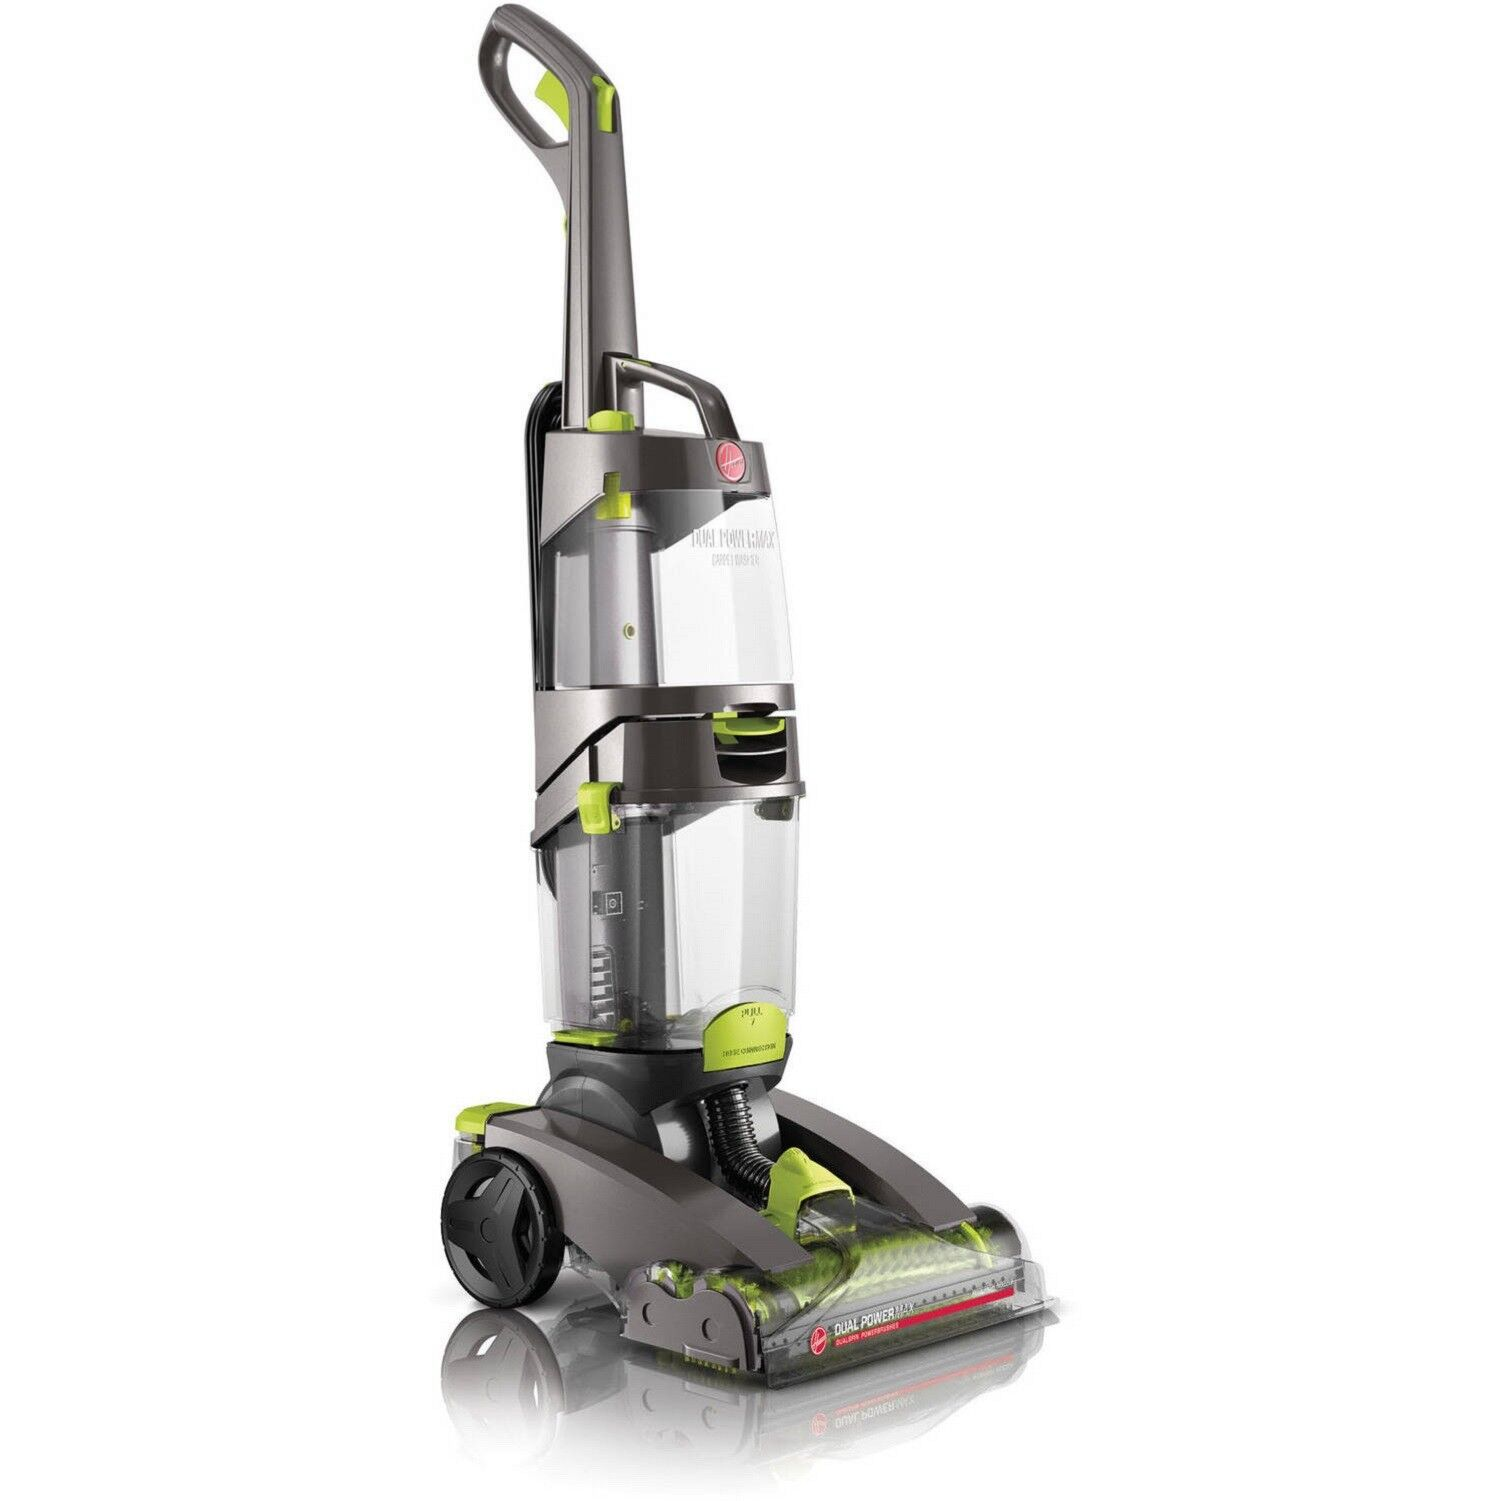 Hoover Dual Power Max Carpet Cleaner, FH51000- NEW- OPEN BOX